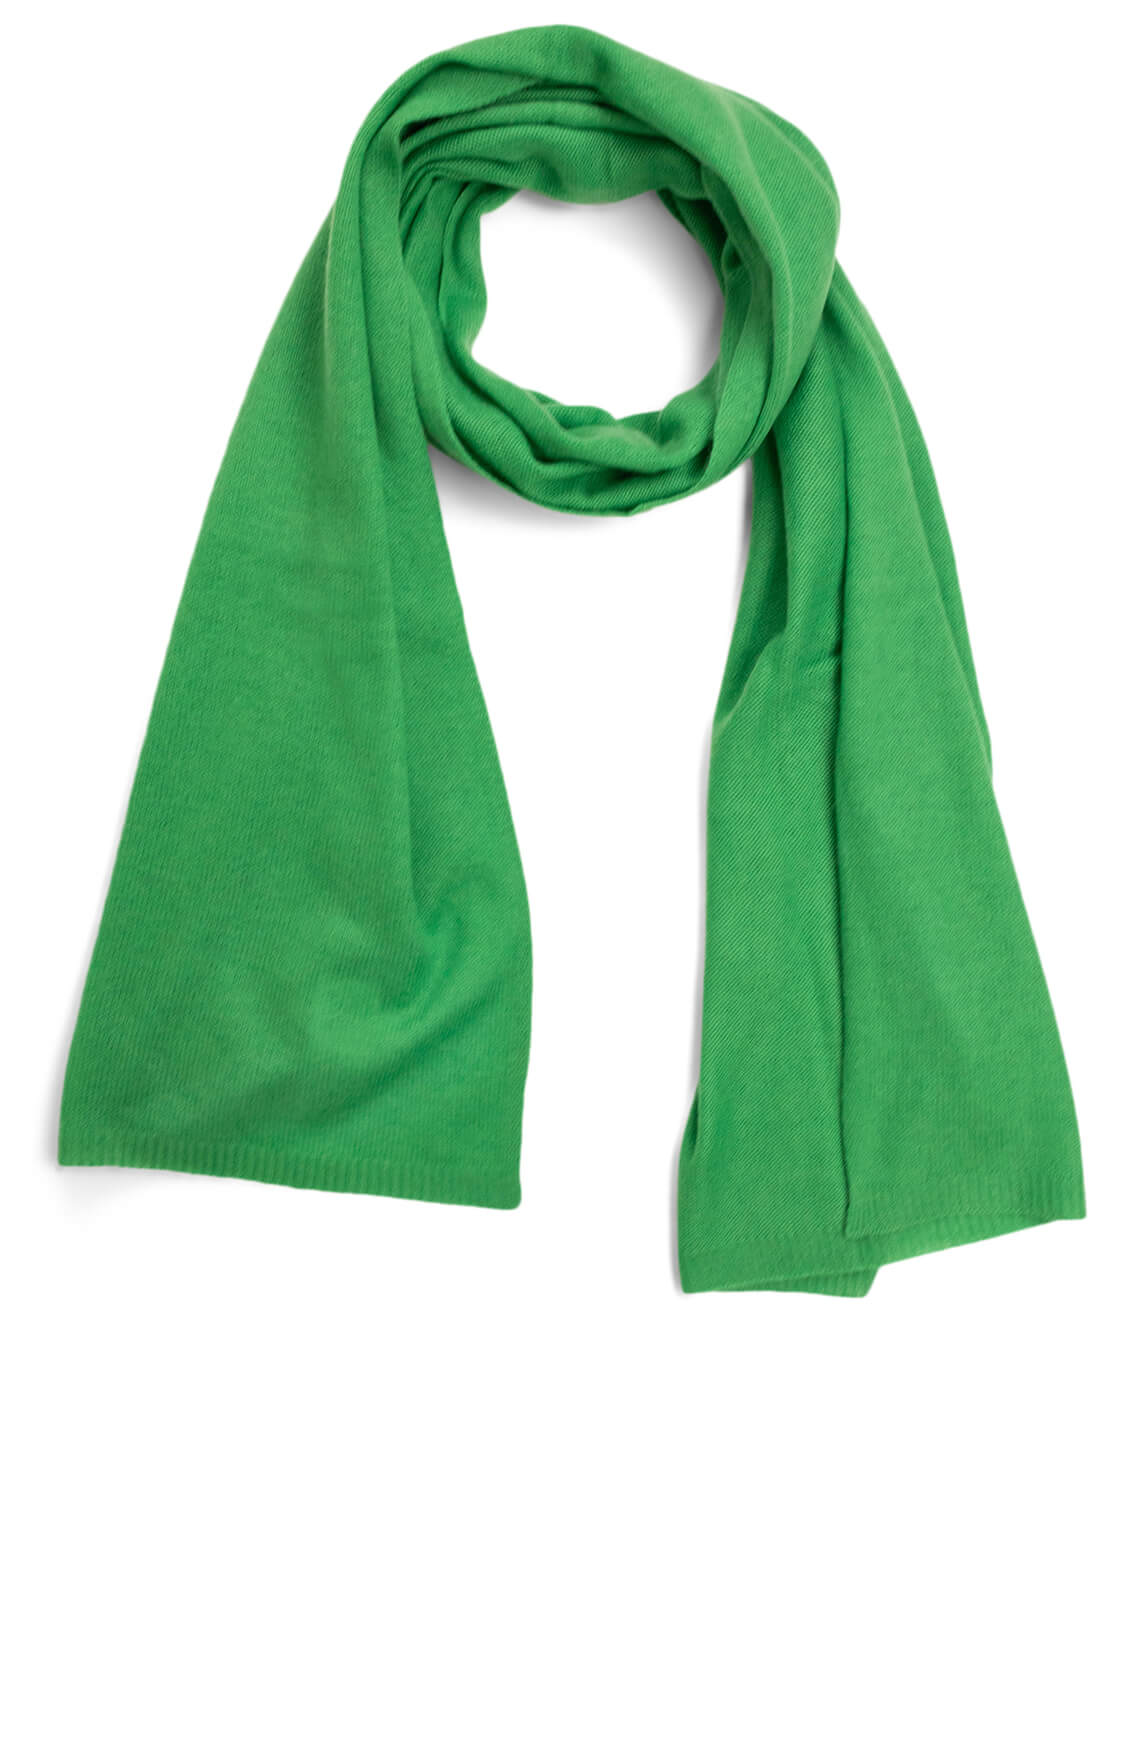 By Happy Sweater Dames Lina shawl groen